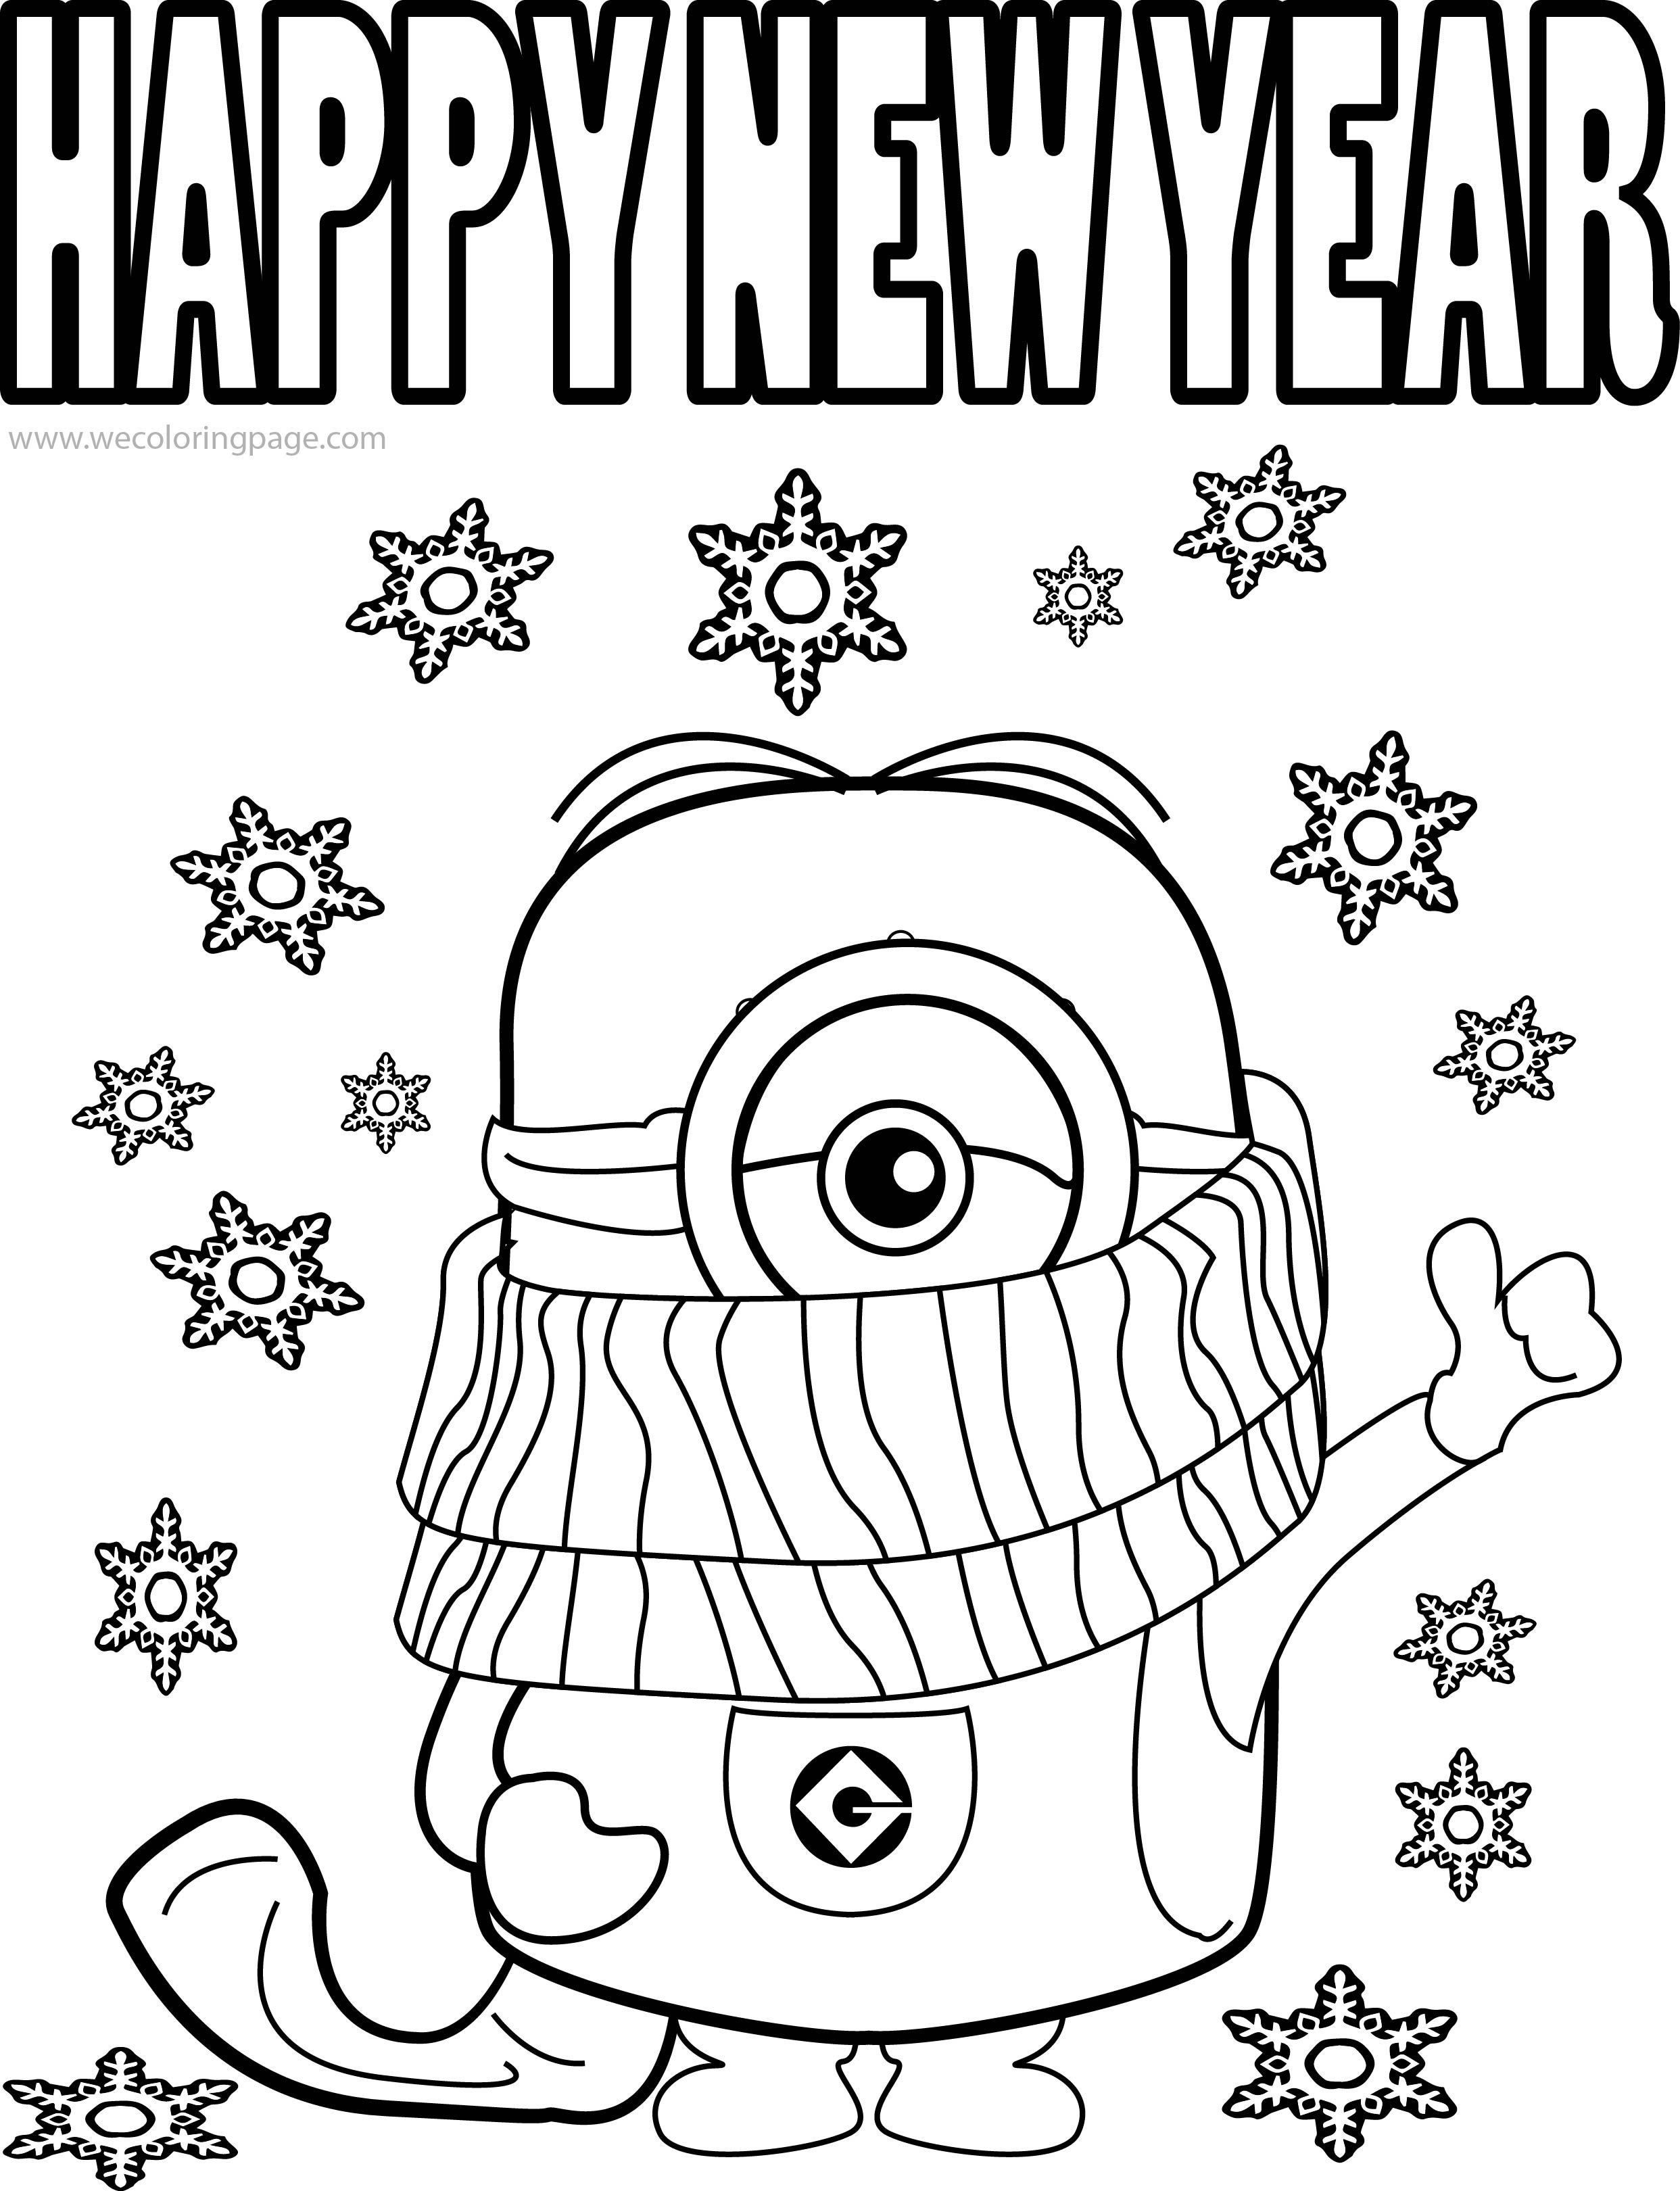 Best Funny Minions Quotes And Picture Cold Weather Happy New Year Coloring Page New Year Coloring Pages Rudolph Coloring Pages Coloring Pages Winter